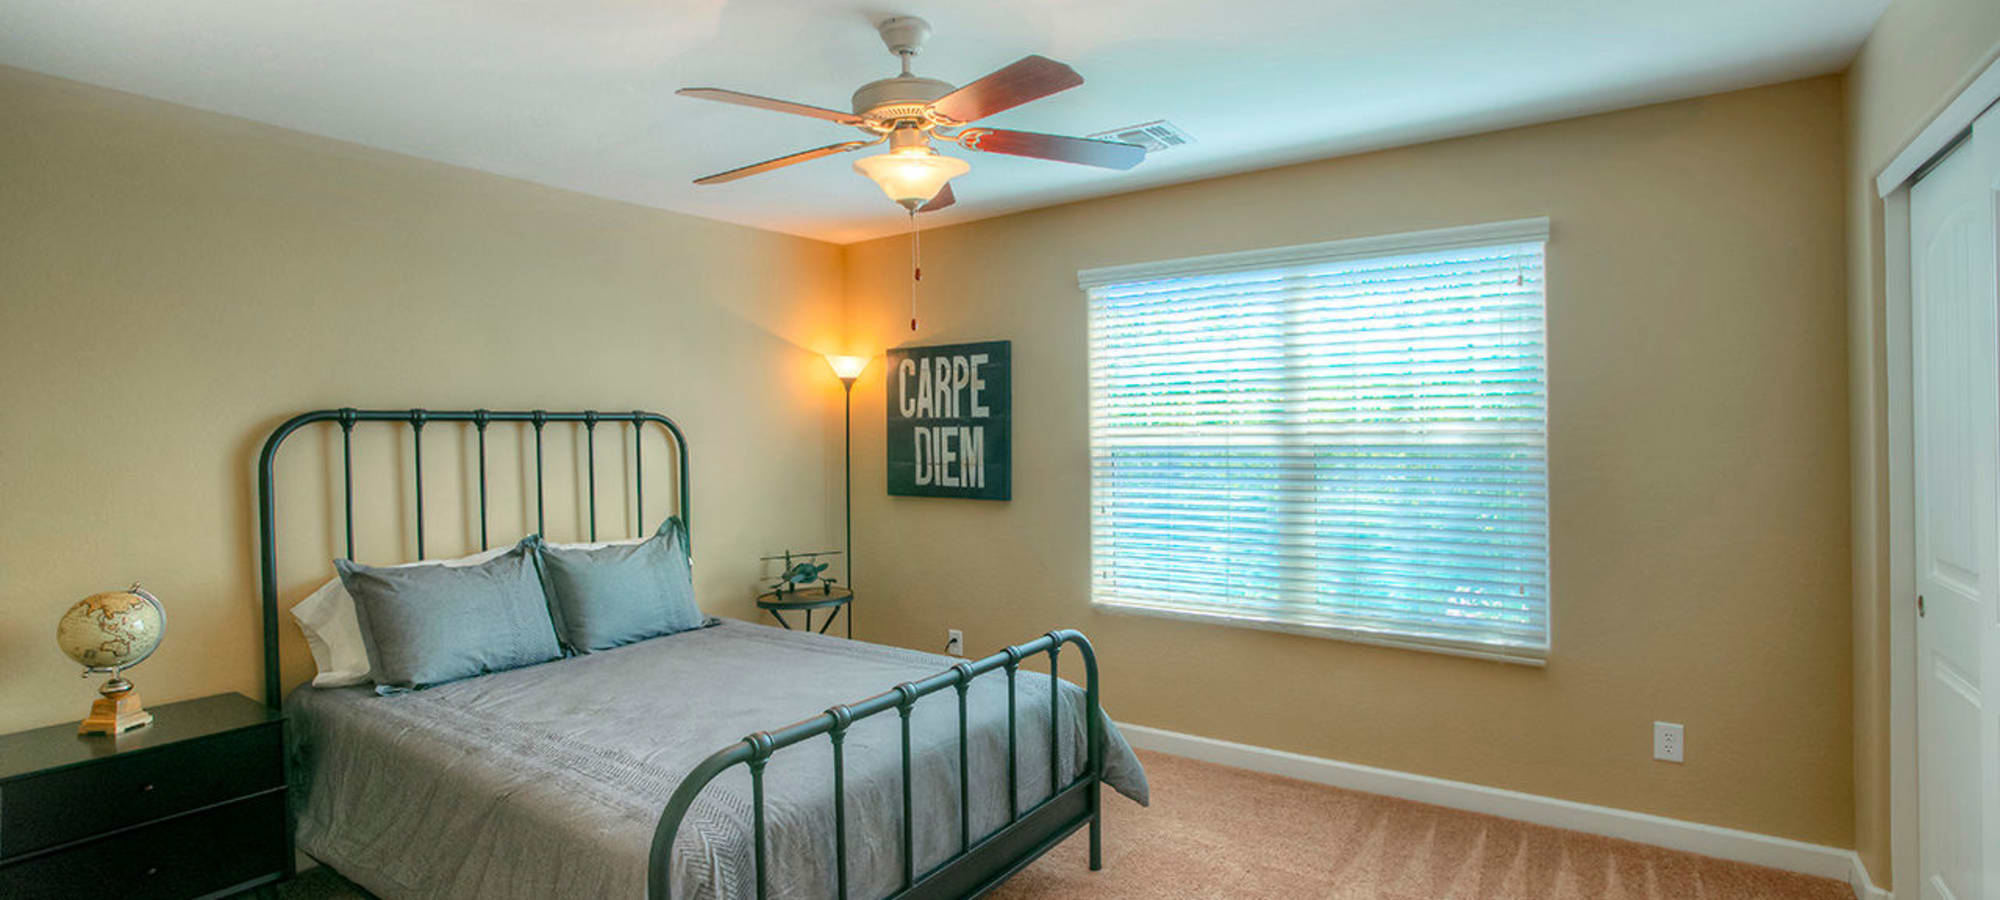 Bedroom with ceiling fan in model home at BB Living at Higley Park in Gilbert, Arizona